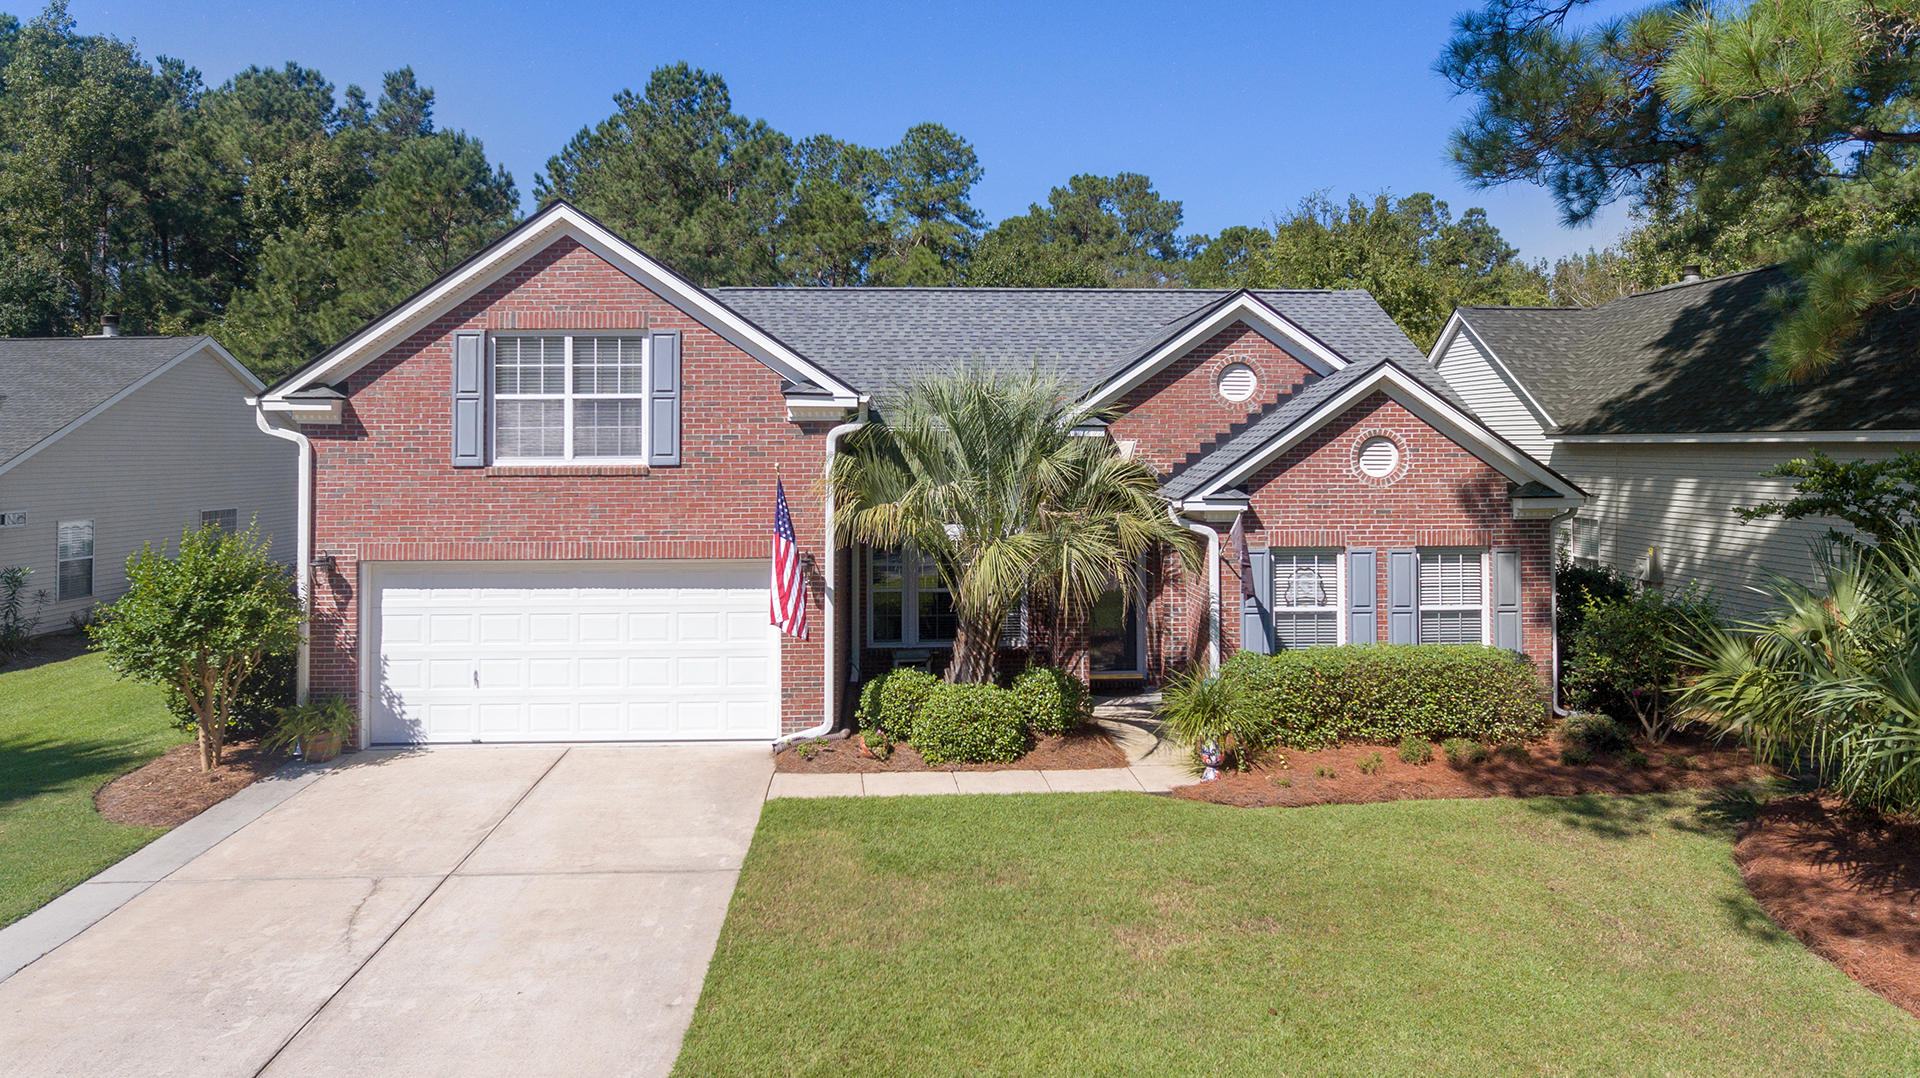 556 Pointe Of Oaks Road Summerville, SC 29485